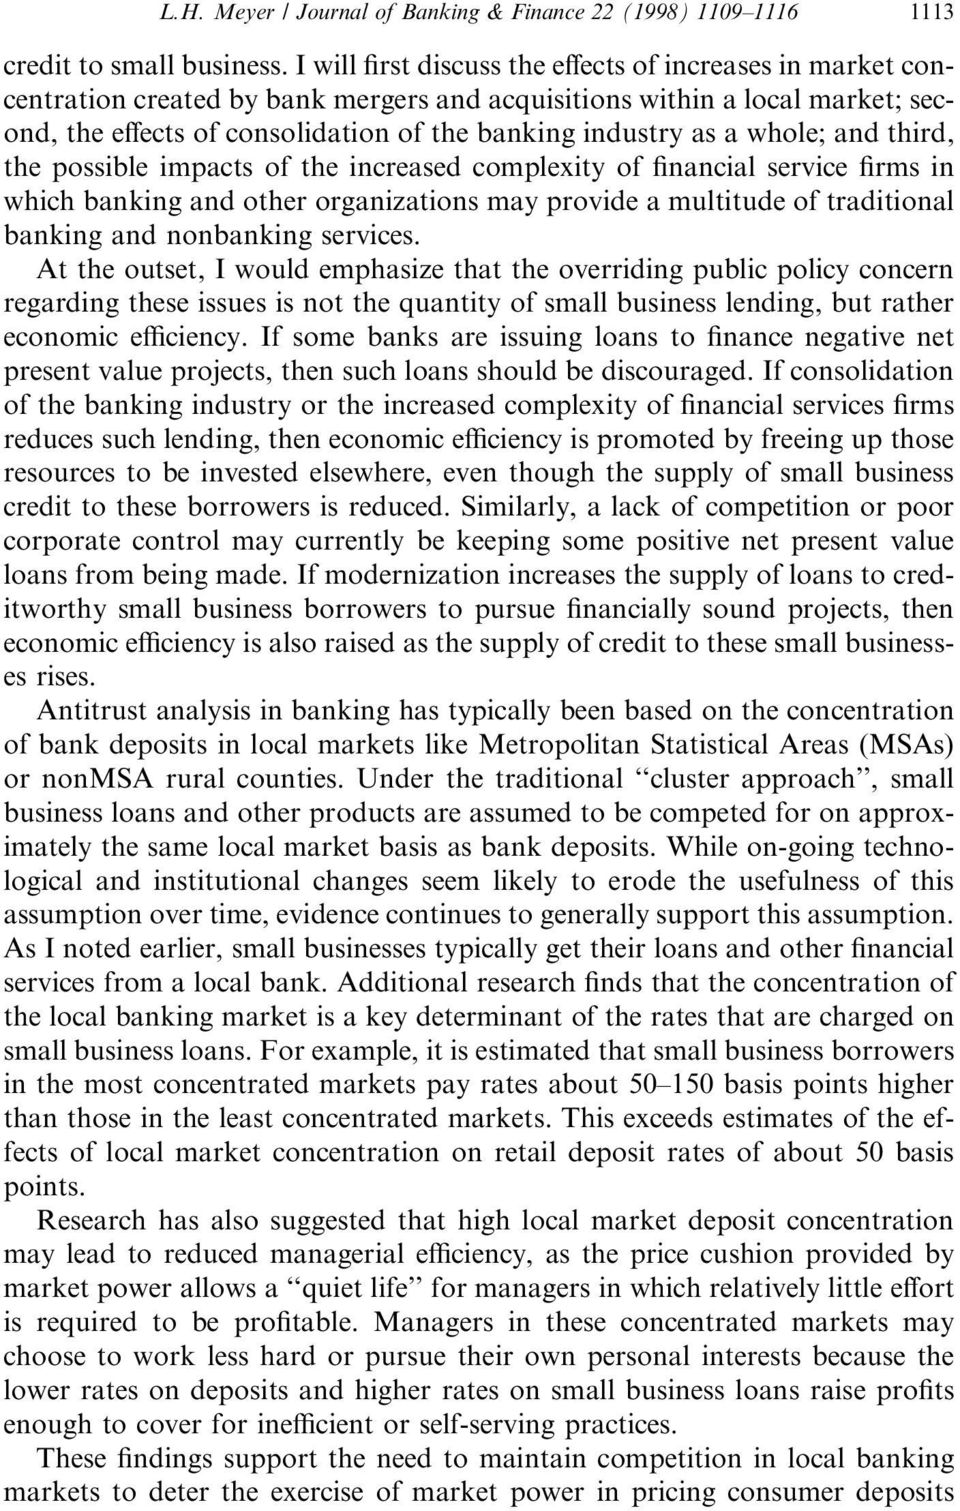 whole; and third, the possible impacts of the increased complexity of nancial service rms in which banking and other organizations may provide a multitude of traditional banking and nonbanking